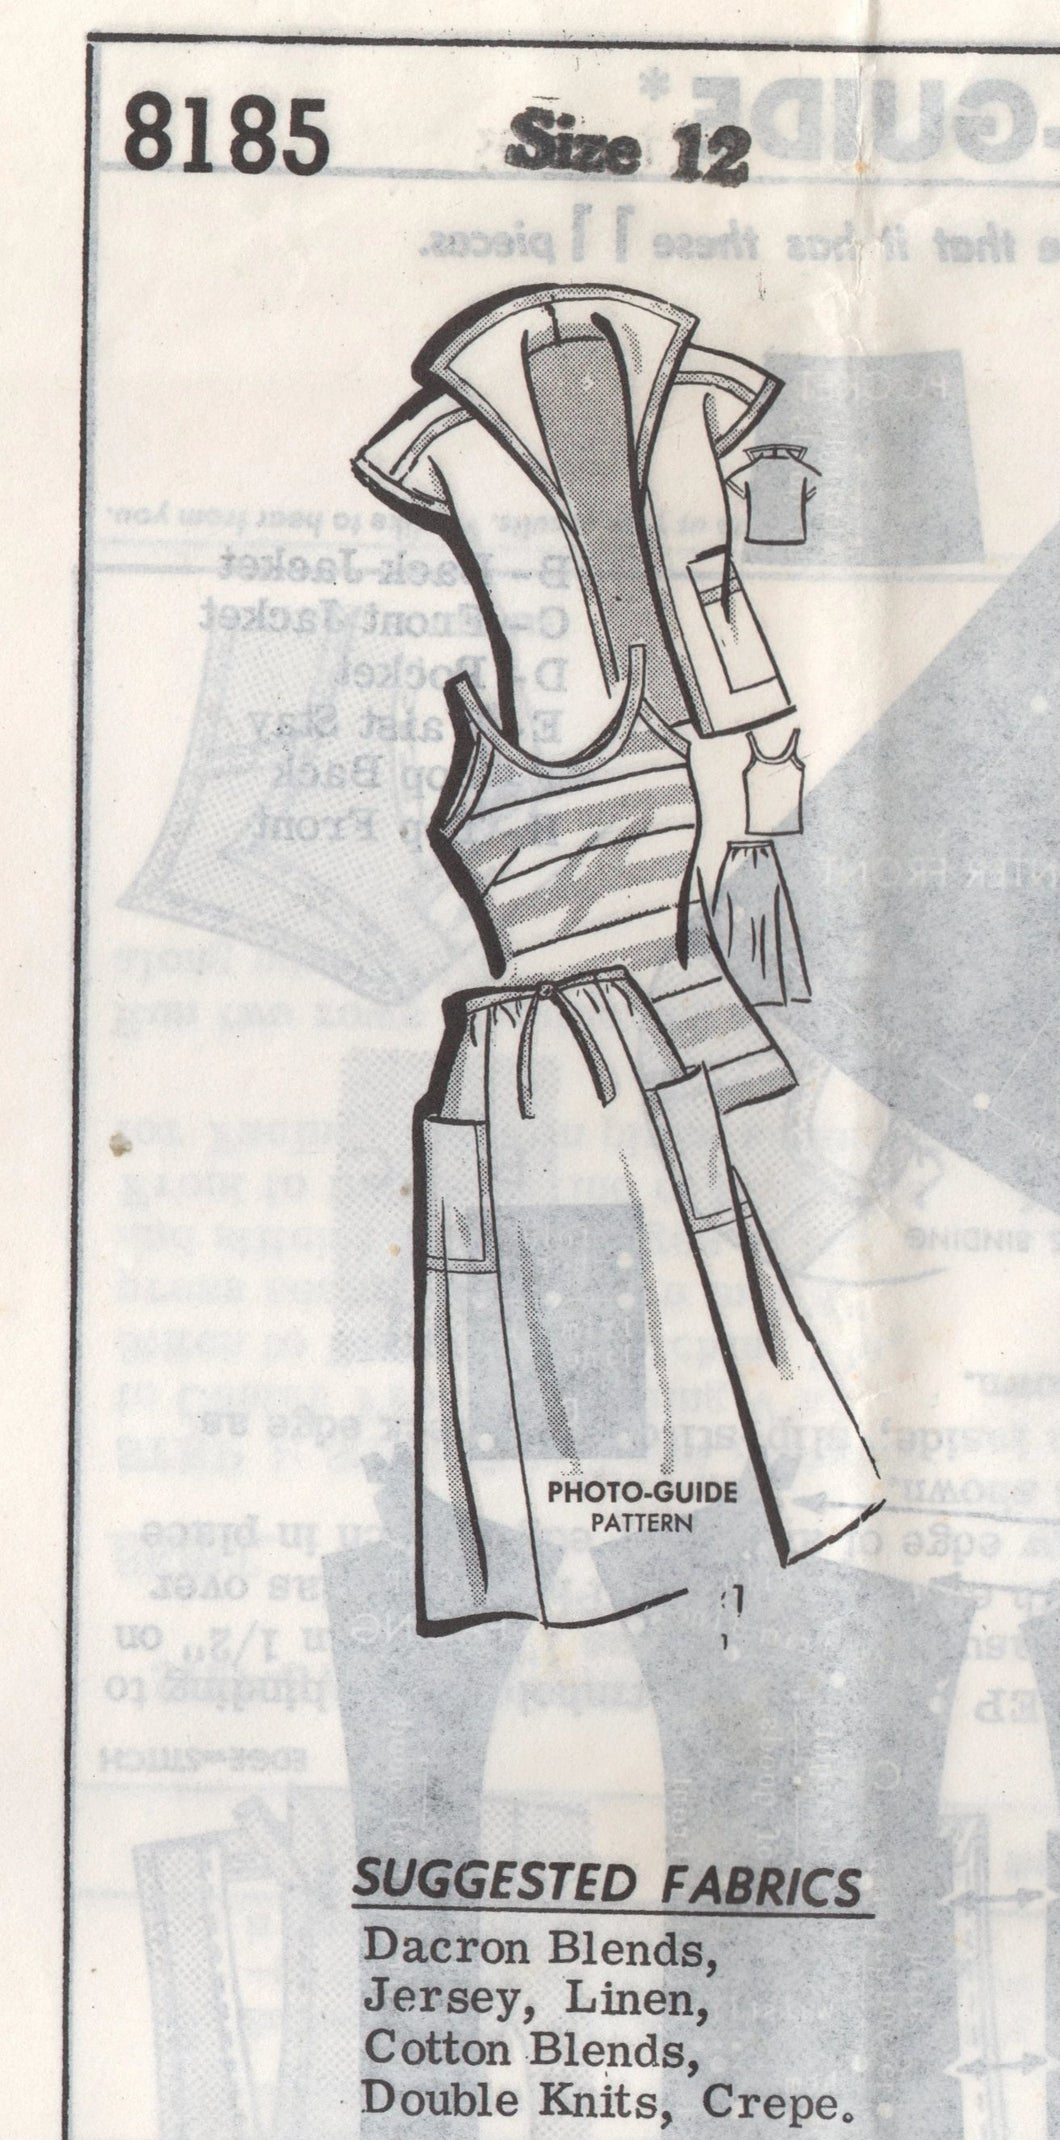 1960's Mail Order 3 Piece Outfit, Jacket, Top and Skirt Pattern - Bust 34